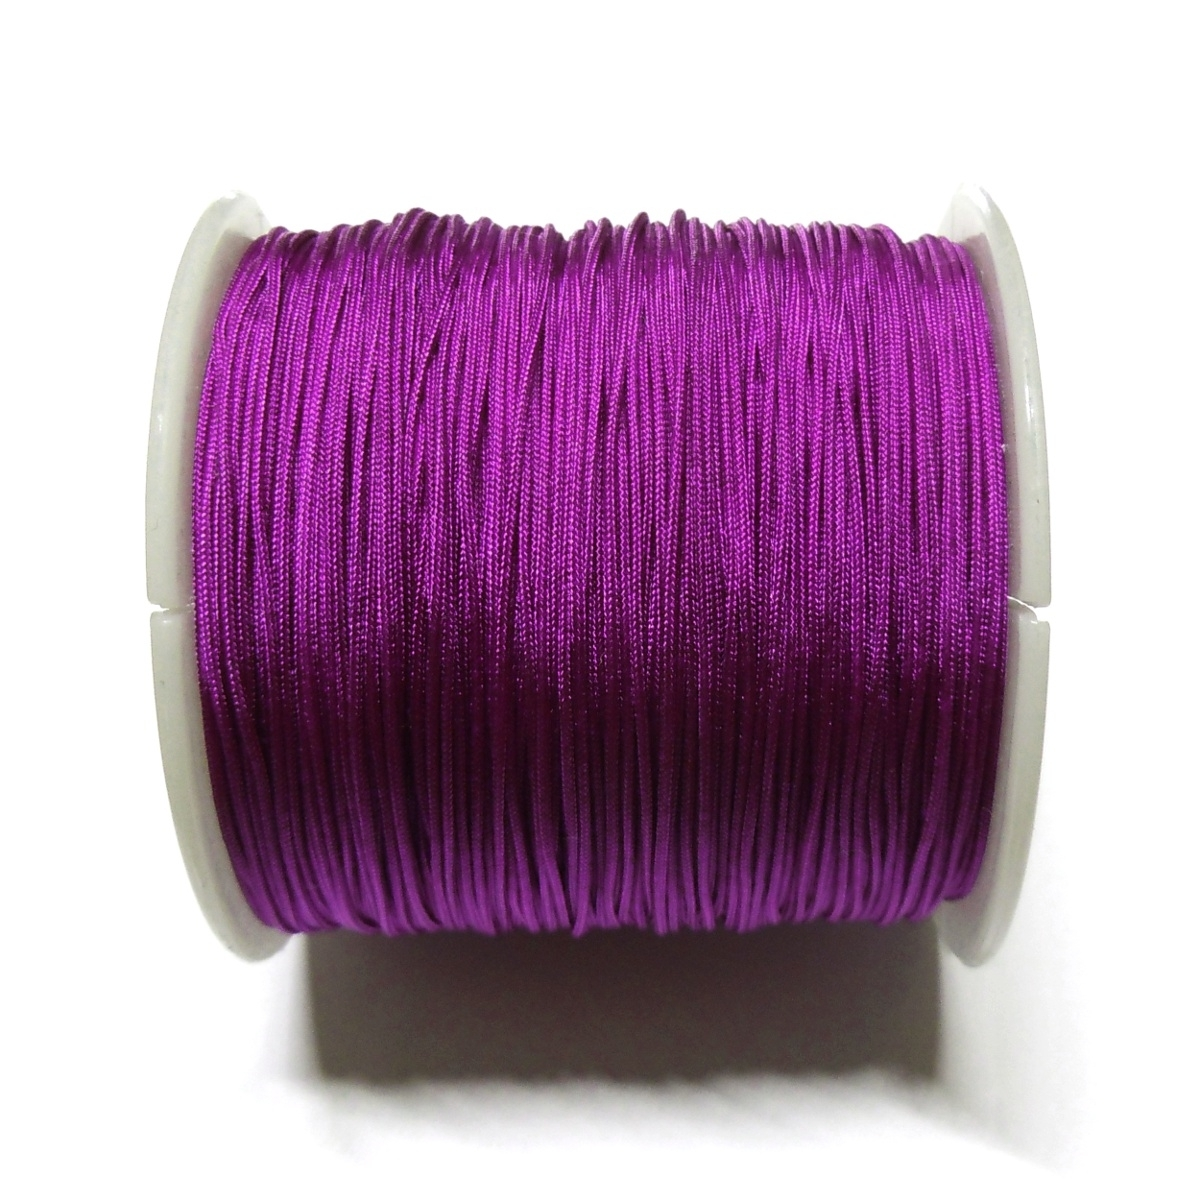 Nylon Cord 0.7mm - Dark Purple 675